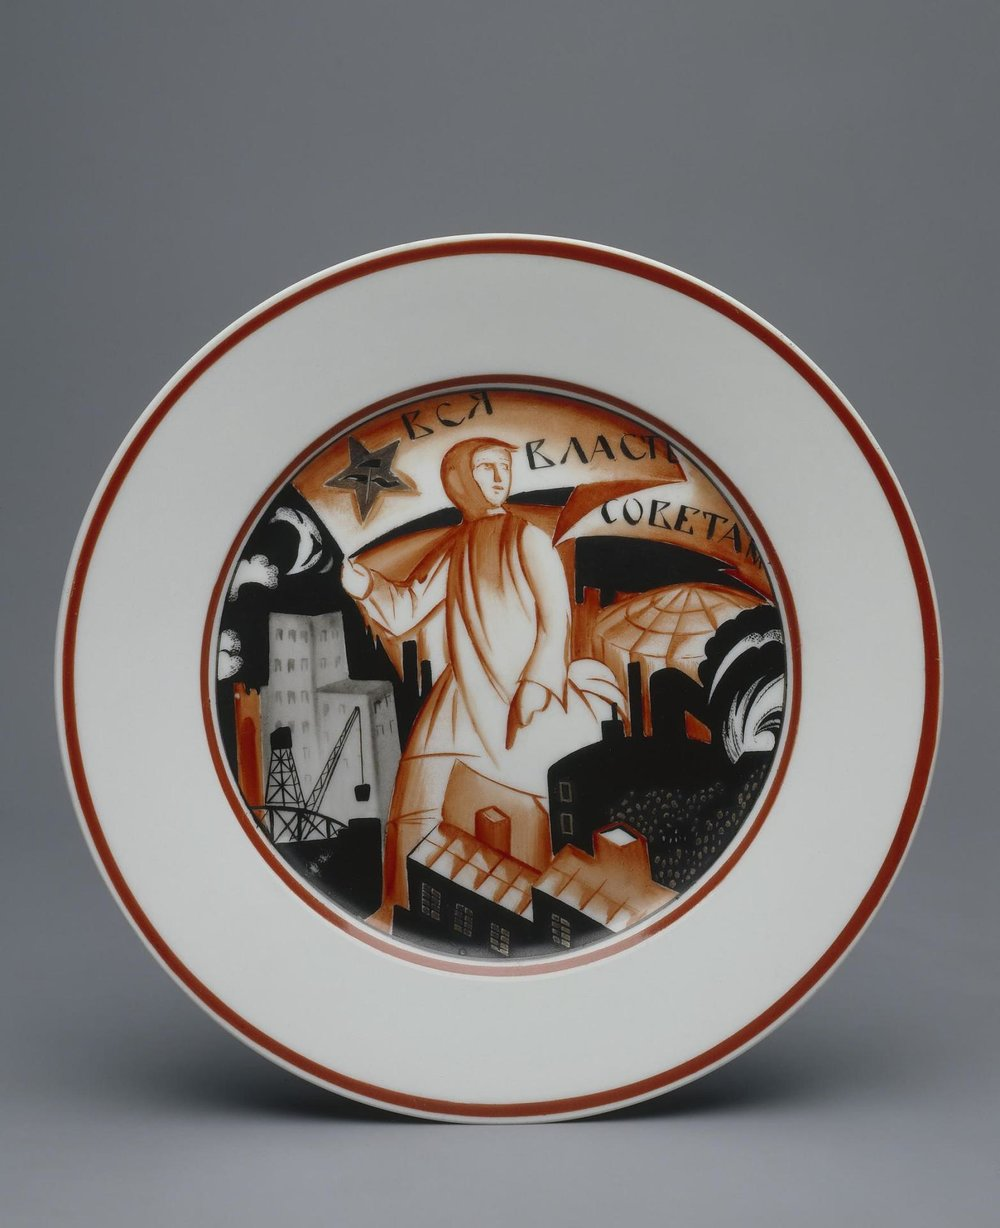 """A Red Man,"" dinner plate painted with the slogan ""All Power to the Soviets,"" designed by Mikhail Adamovich, painted by Maria Kirillova.  State Porcelain Factory, USSR, 1921. Hermitage Museum, transferred in 2002 as part of the collection of the Museum of the Imperial Porcelain."